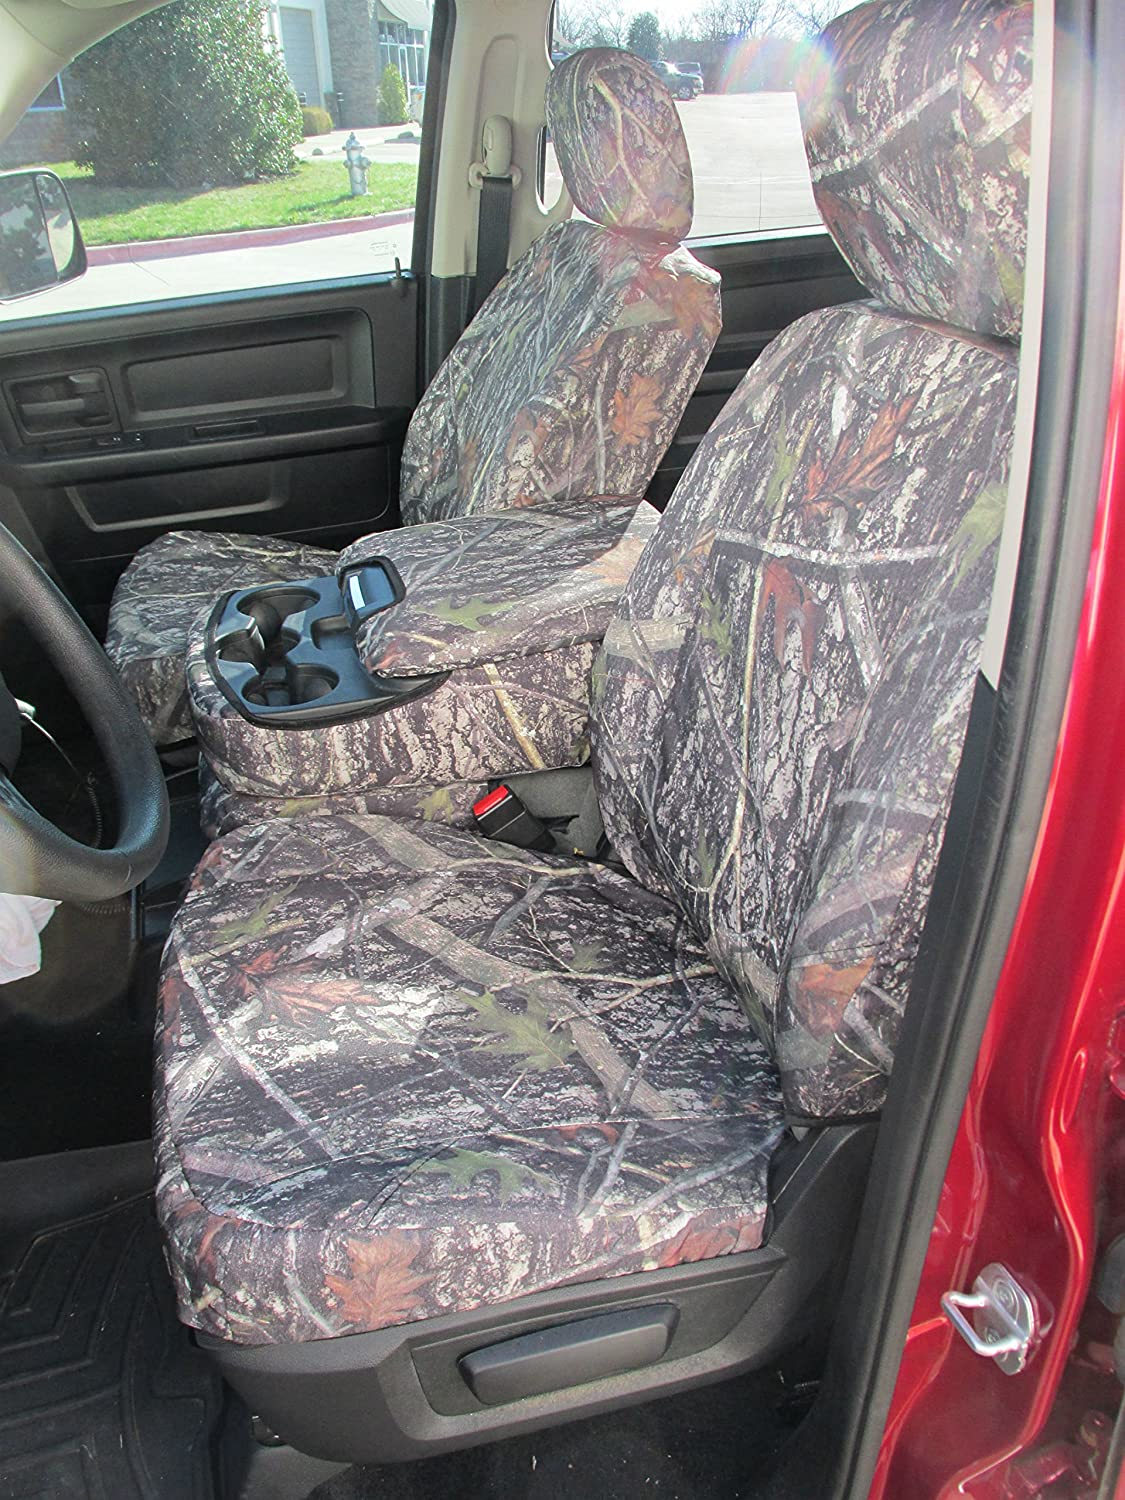 Durafit Seat Covers, D1332 XD3 C 2013-2014 Dodge Ram 1500 Seat Covers in XD3 Camo Endura. Front 40/20/40 split bench, Opening 20 section seat bottom with opening center console with 3 cup holders. Side impact airbags in seat лодочный электромотор minn kota endura max 40 maximize